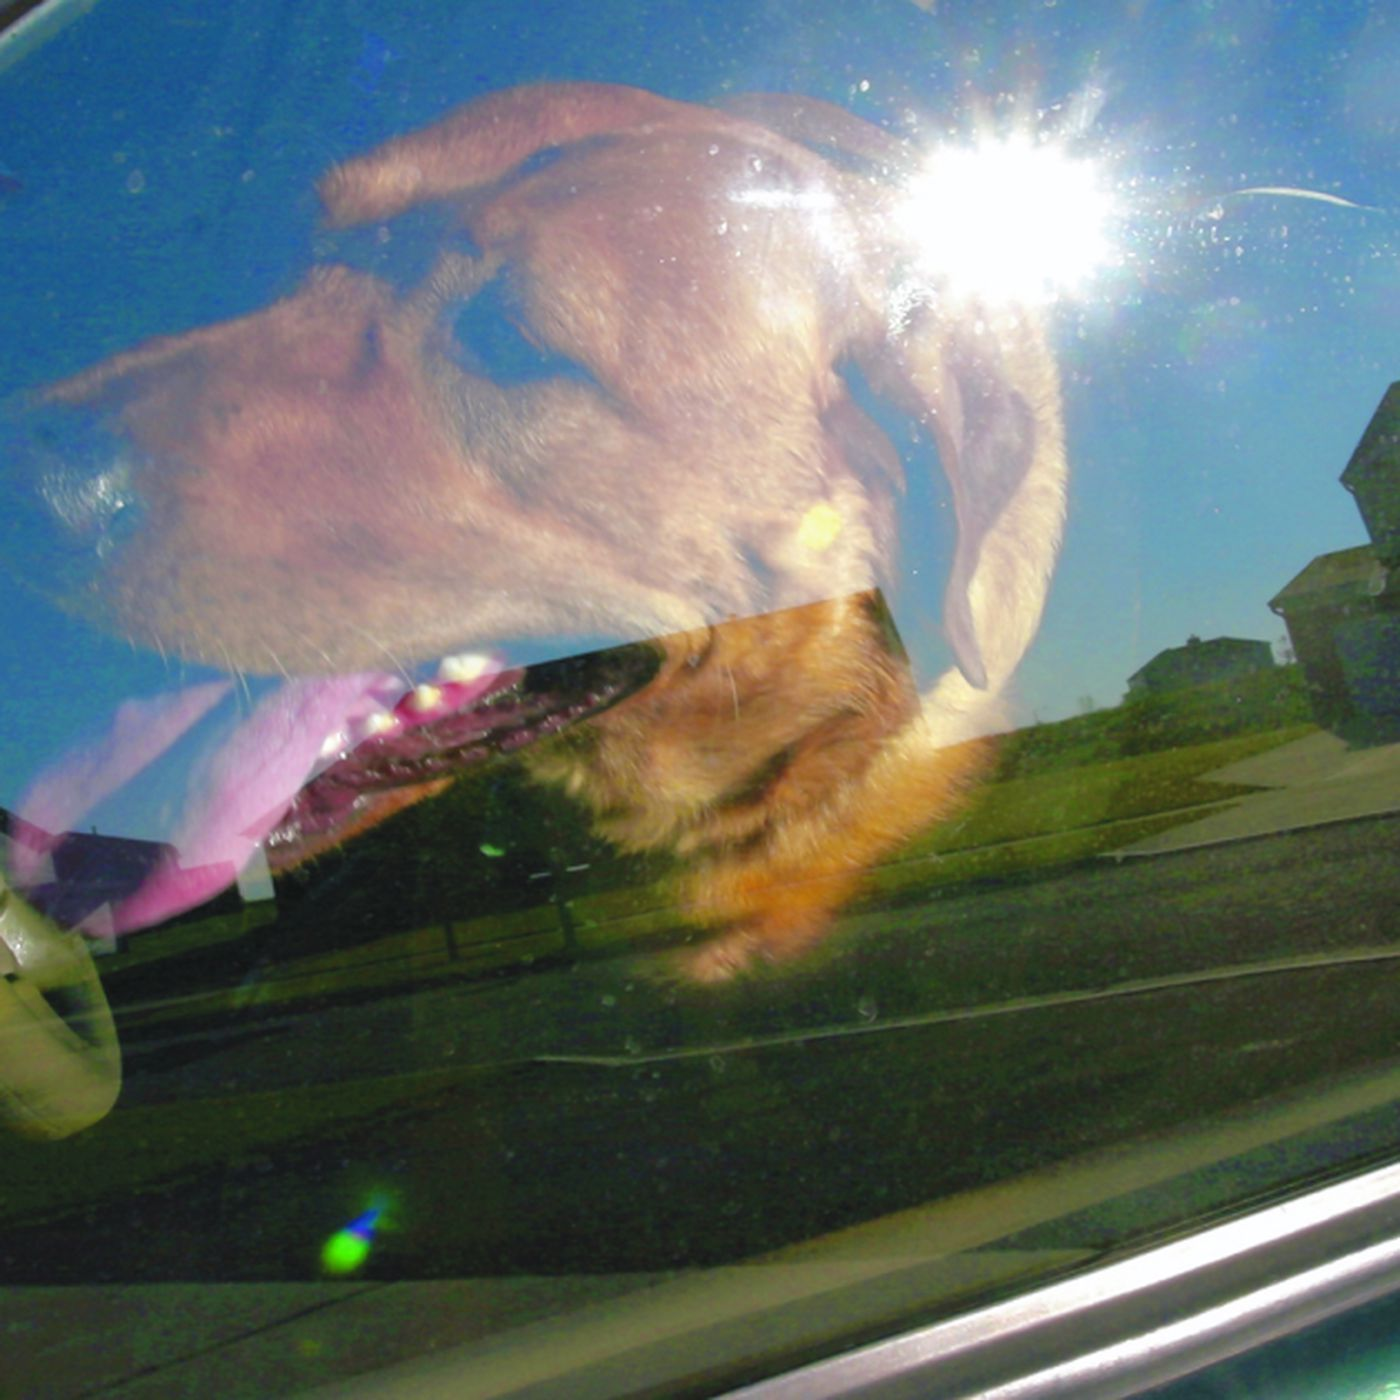 Police and animal control empowered to break into cars with